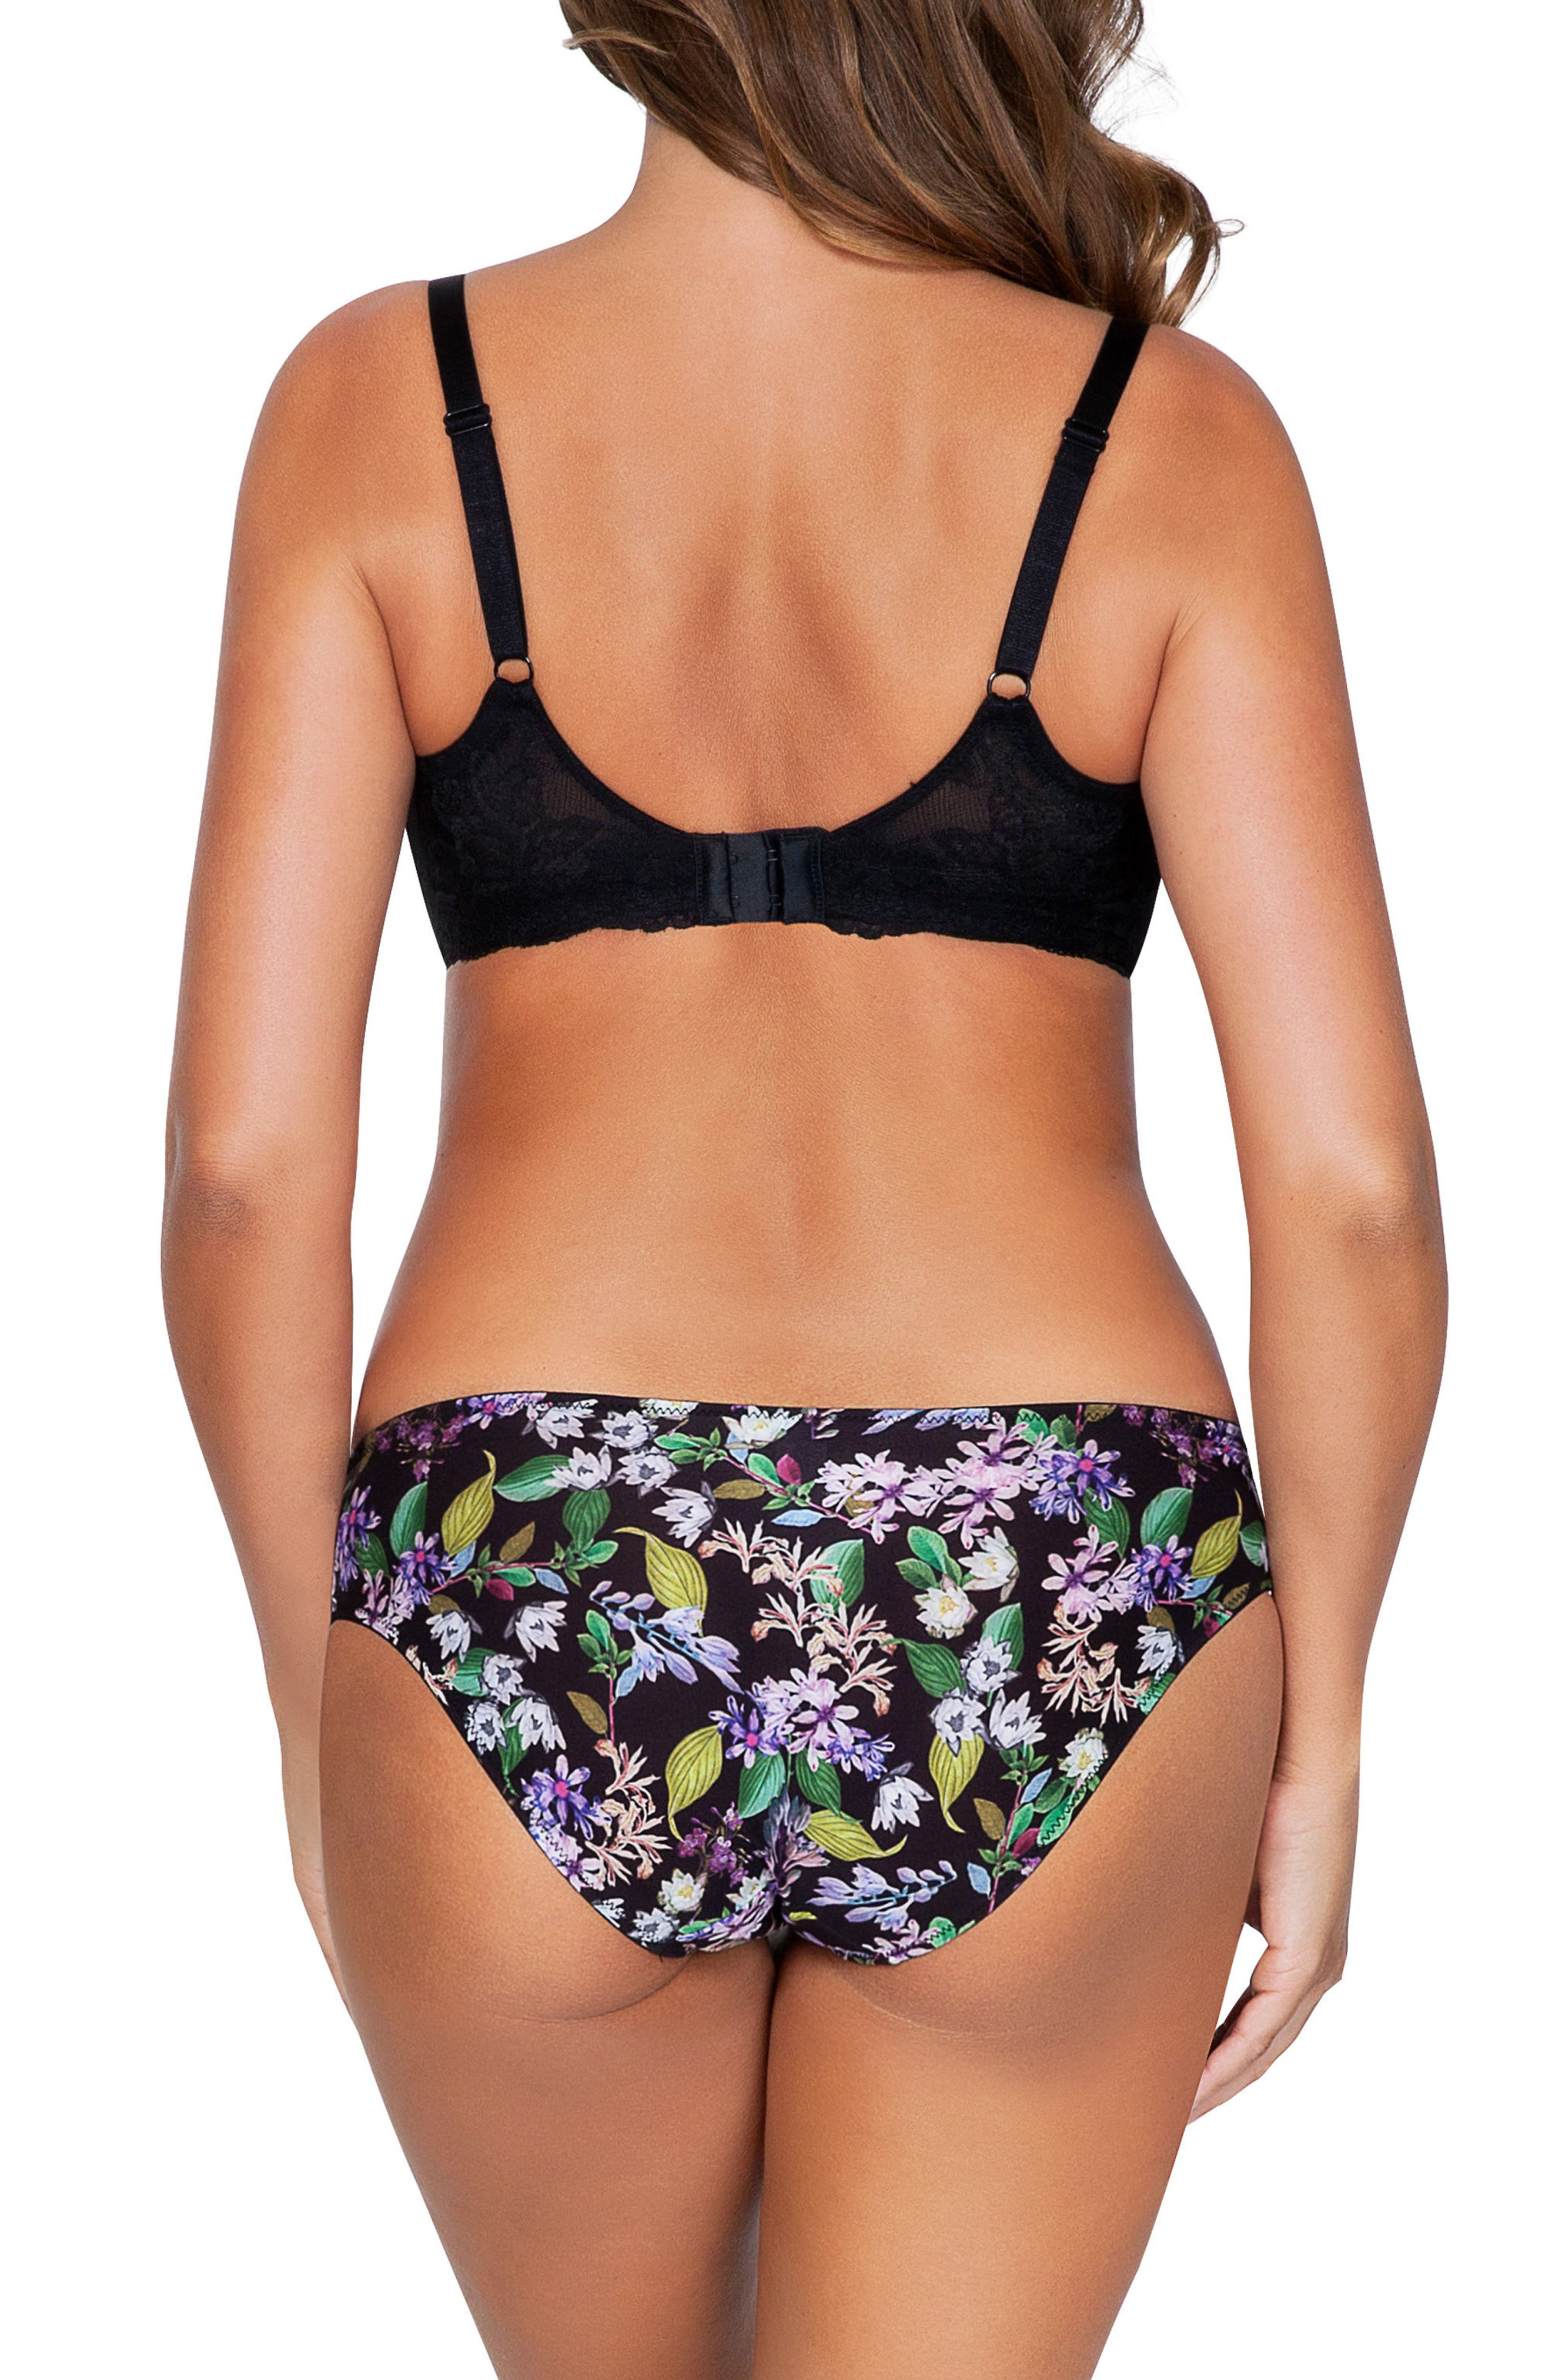 Ava Underwire Bra,                             Alternate thumbnail 4, color,                             Black Floral